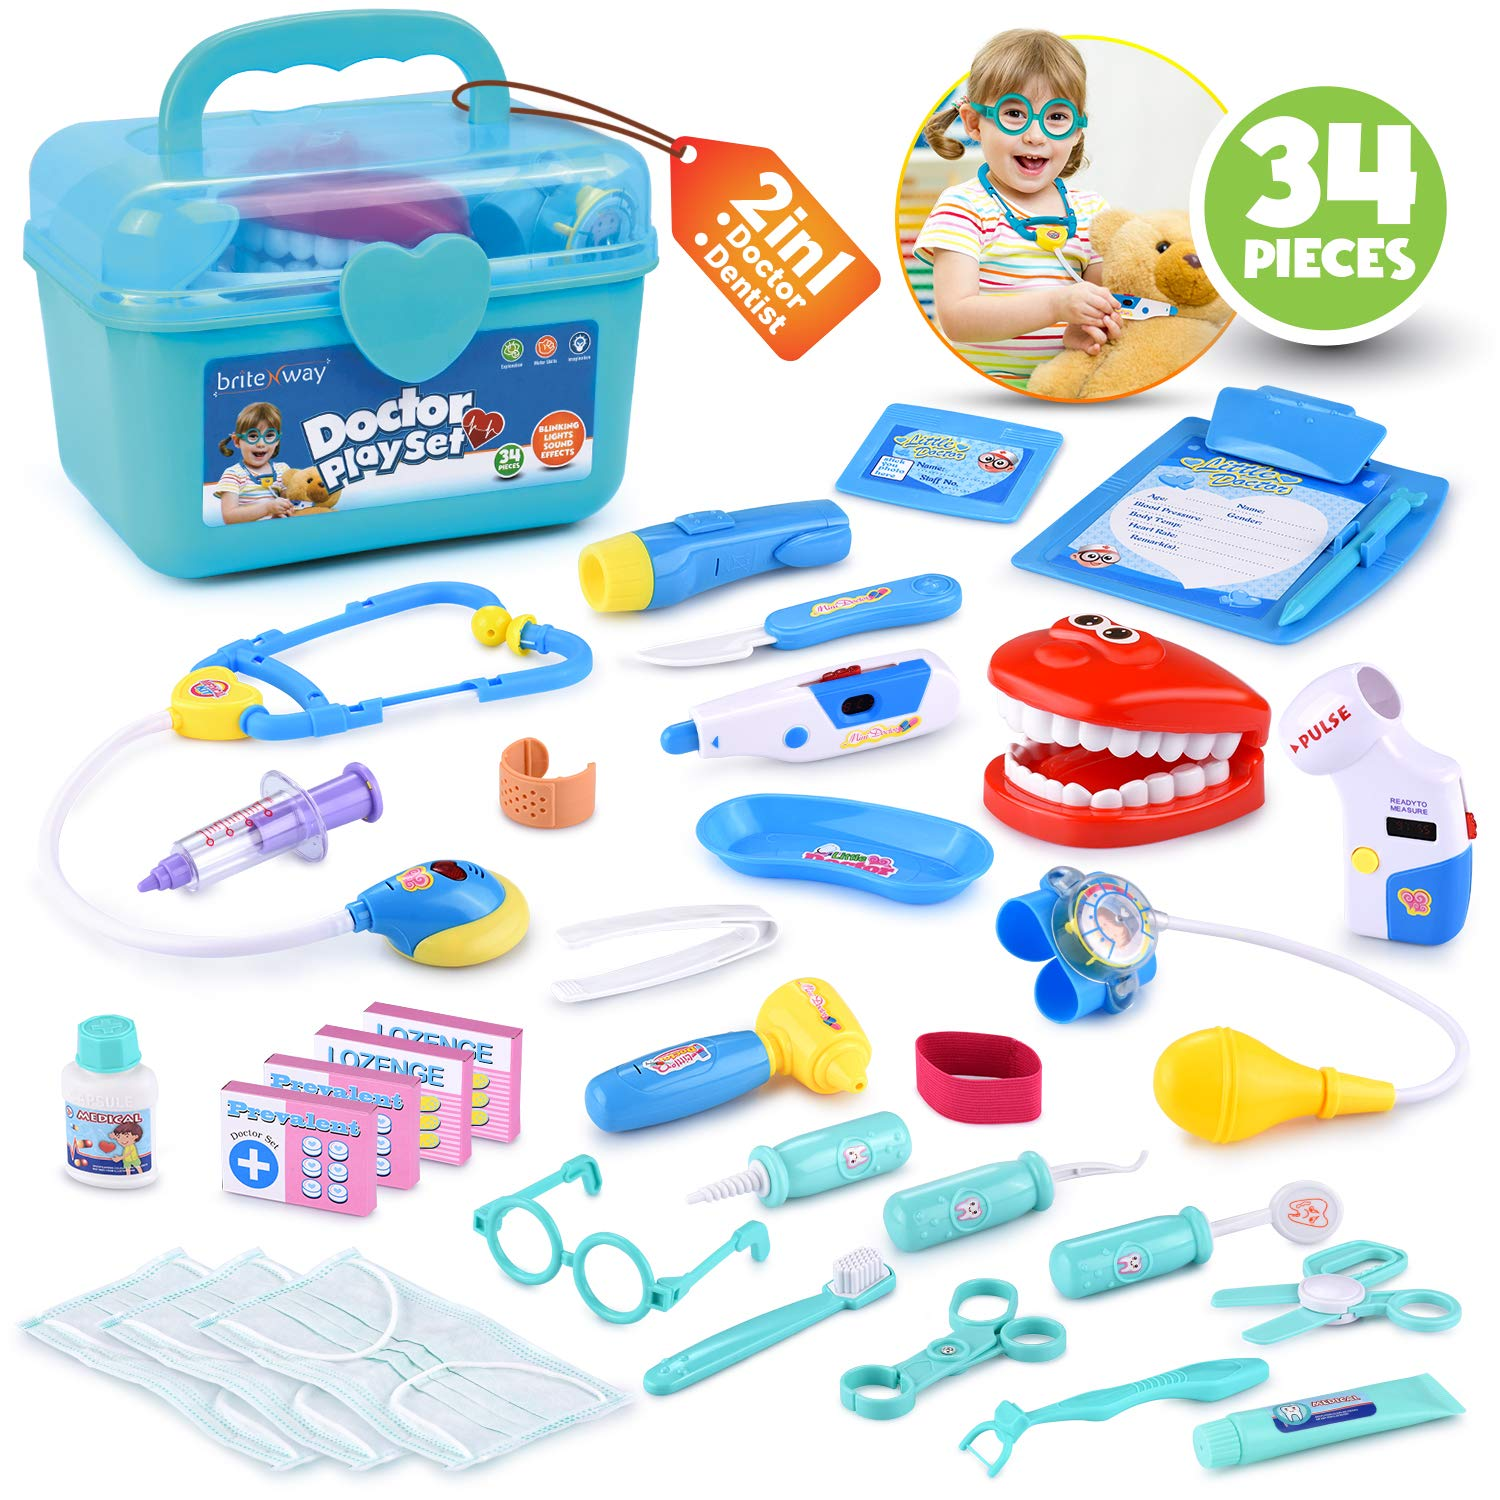 BRITENWAY Educational Doctor Medical Pretend Play Toy Set in Storage Box 34 Pcs - Battery Operated Tools with Lights & Sounds - Promote Learning, Hand to Eye Coordination, Fine Motor Skills by BRITENWAY